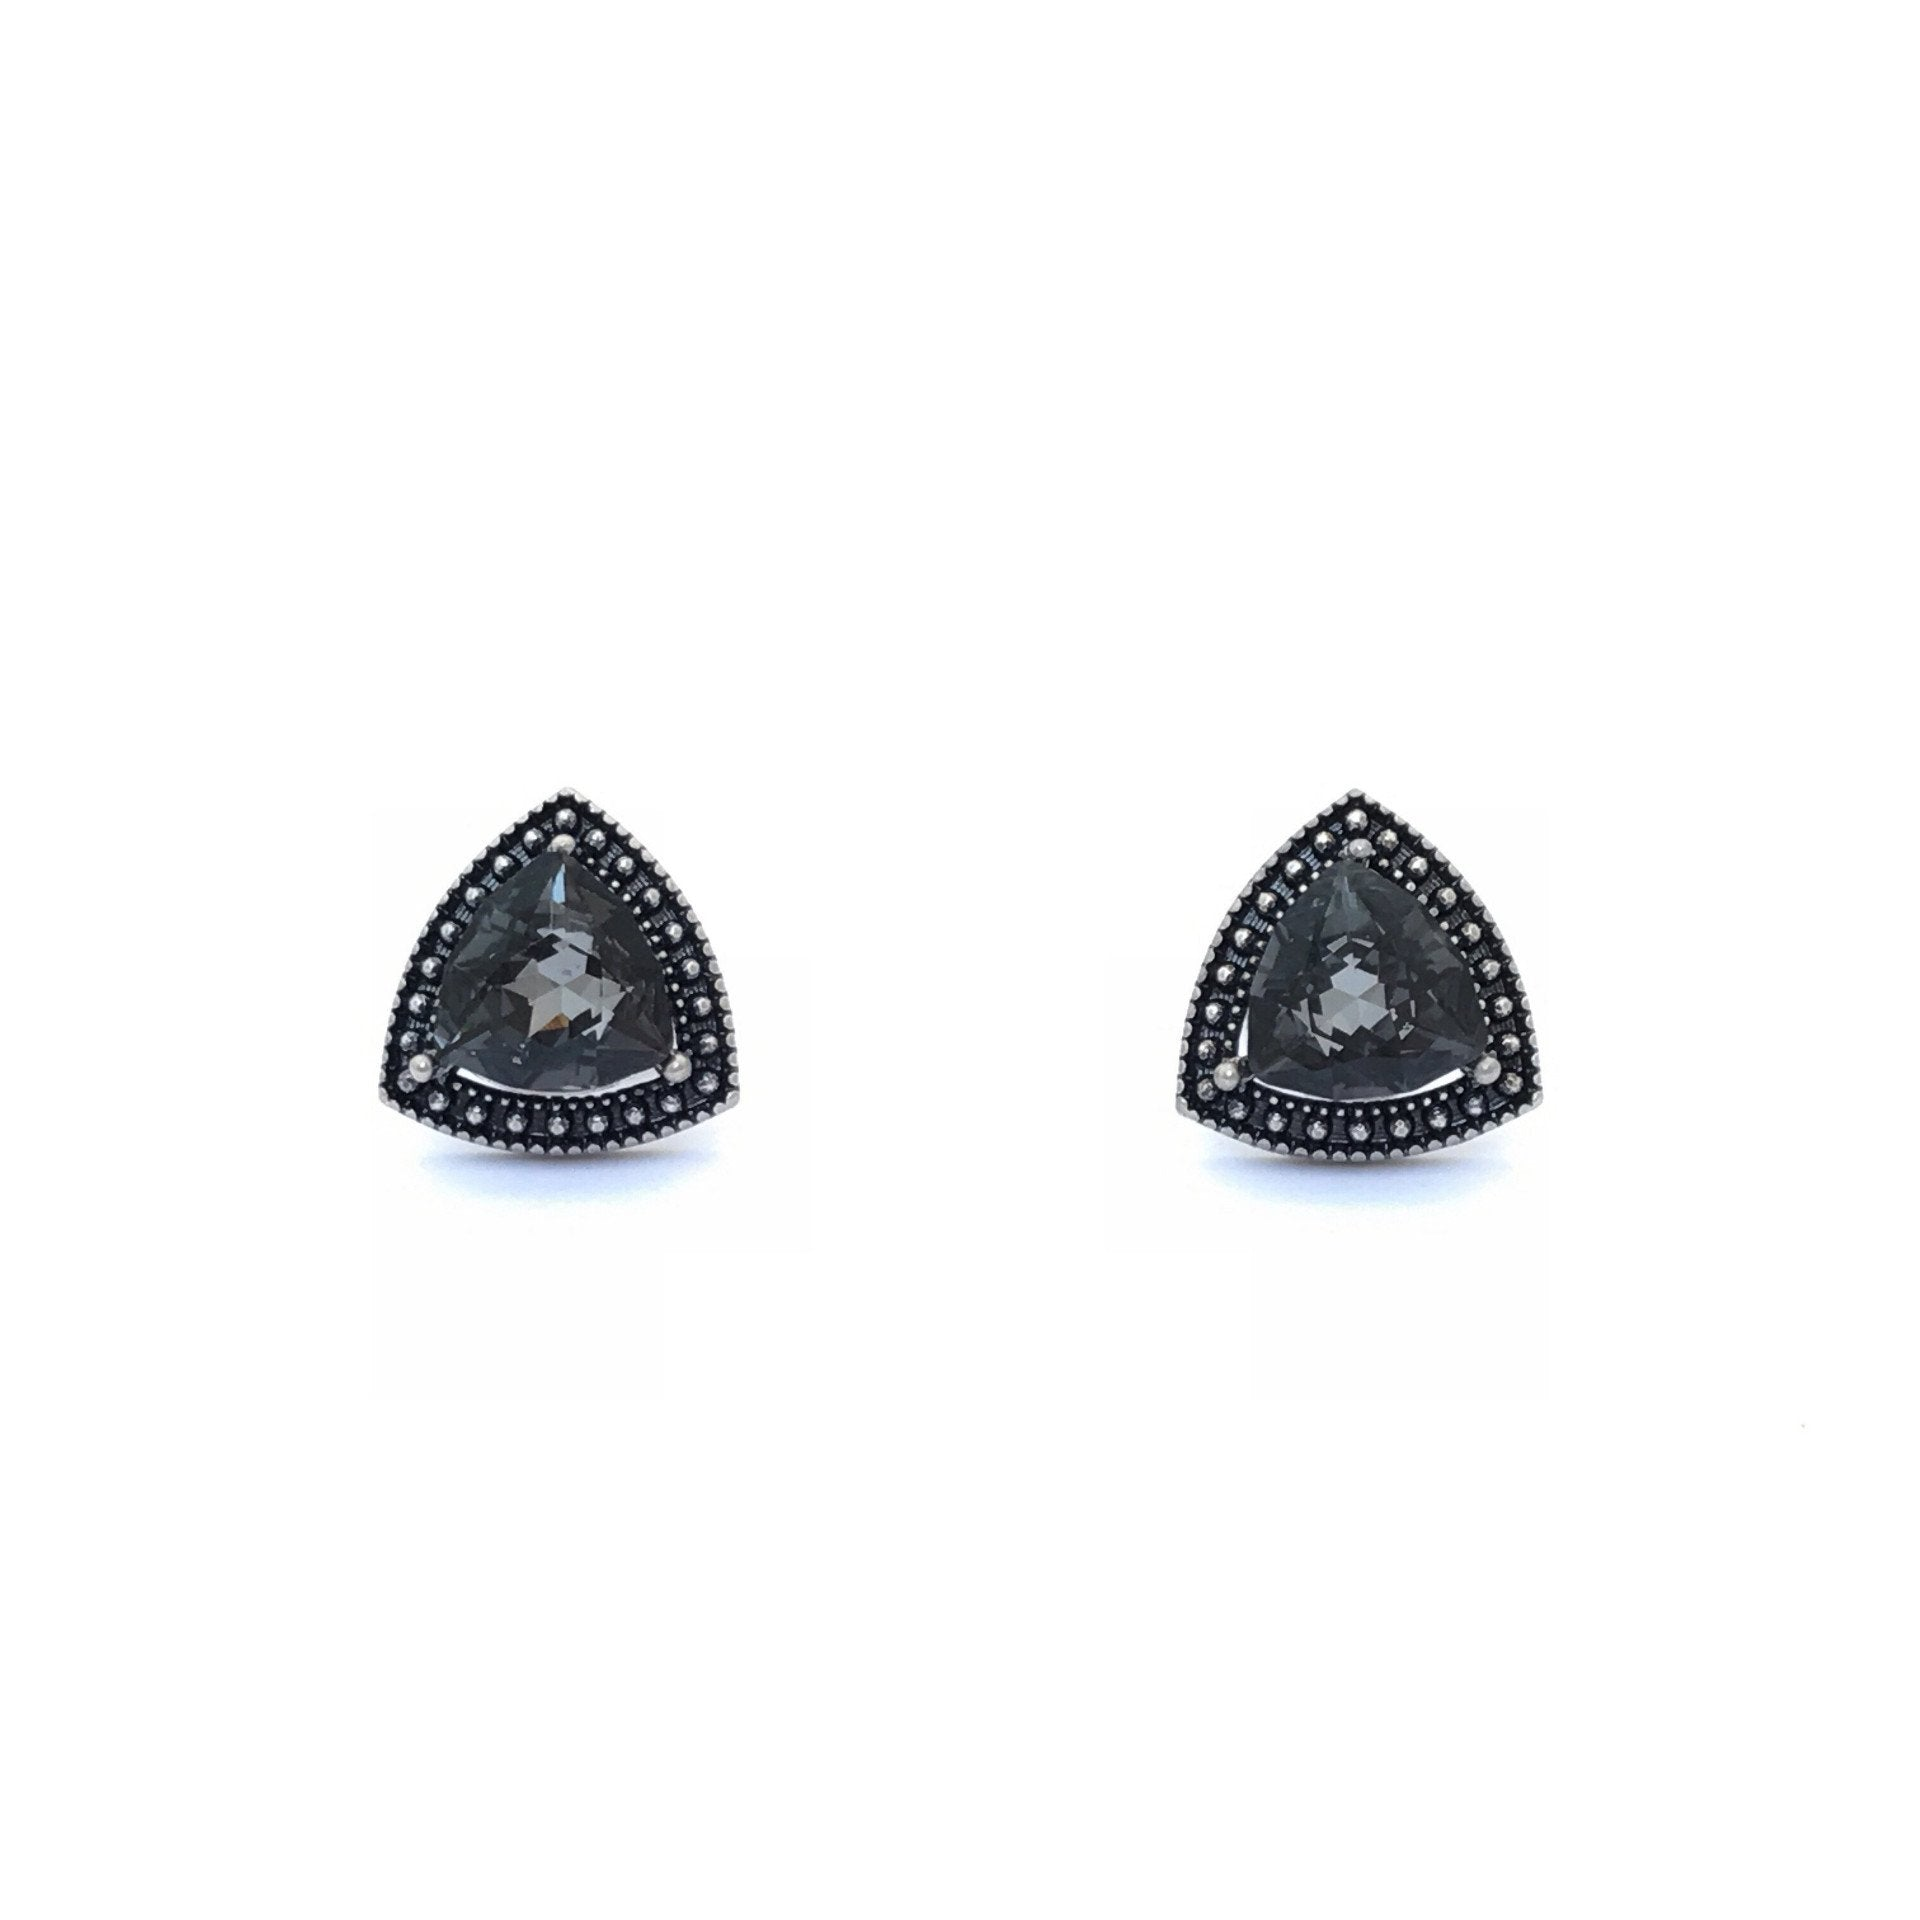 products sip crystal earrings front studs black sangria jewelry swarovski stud rhodium